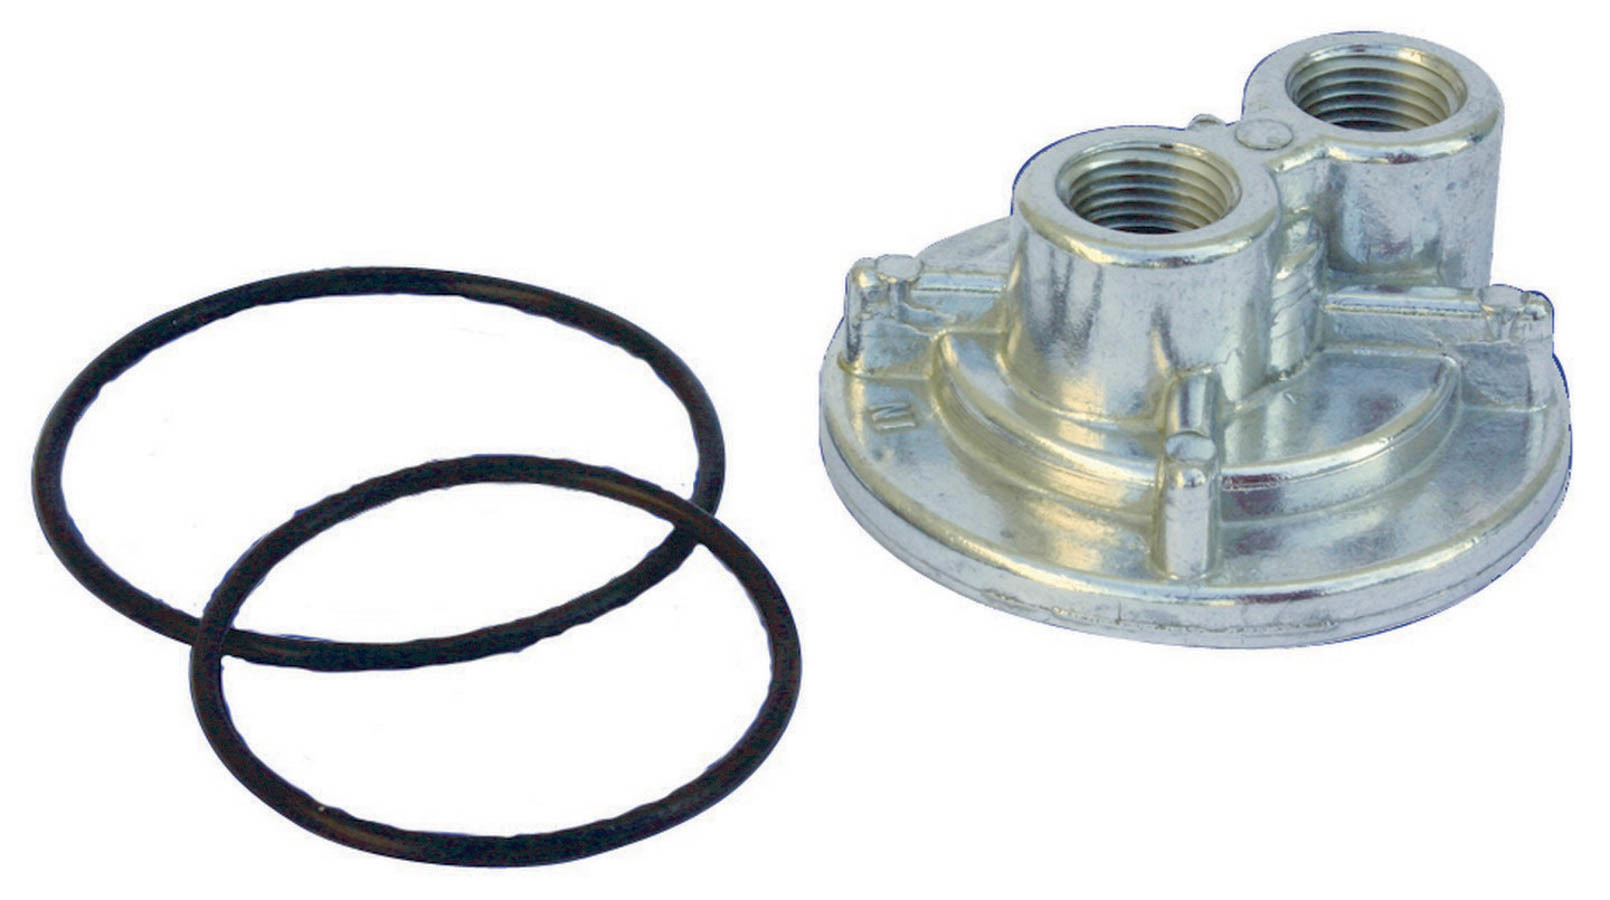 Perma Cool 114 Oil Filter Adapter, Bypass, 13/16-16 in Center Thread, Two 1/2 in NPT Female Ports, Billet Aluminum, Natural, Each